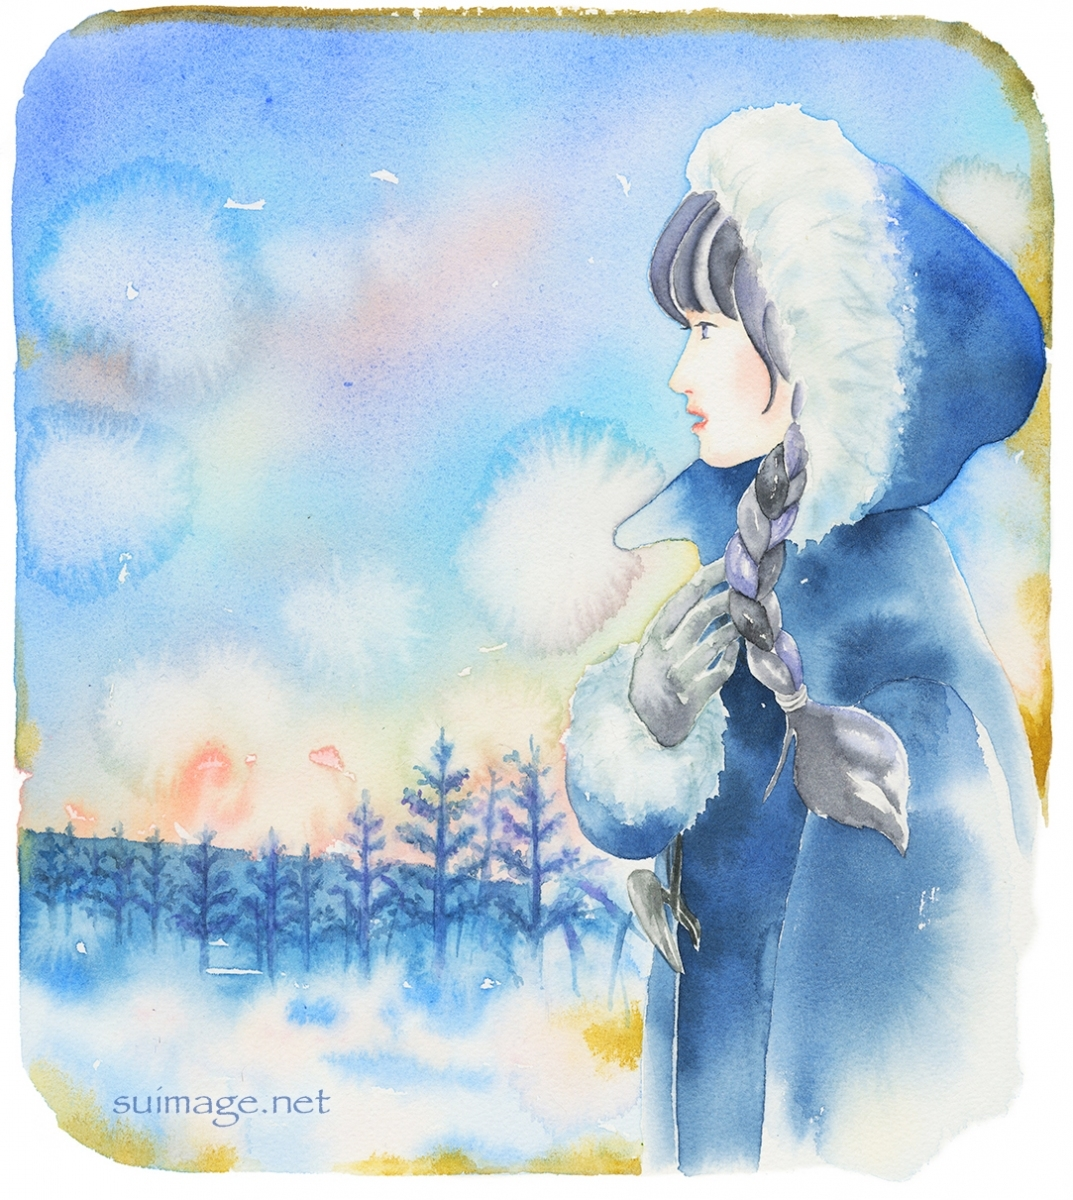 冬の朝 The winter morning